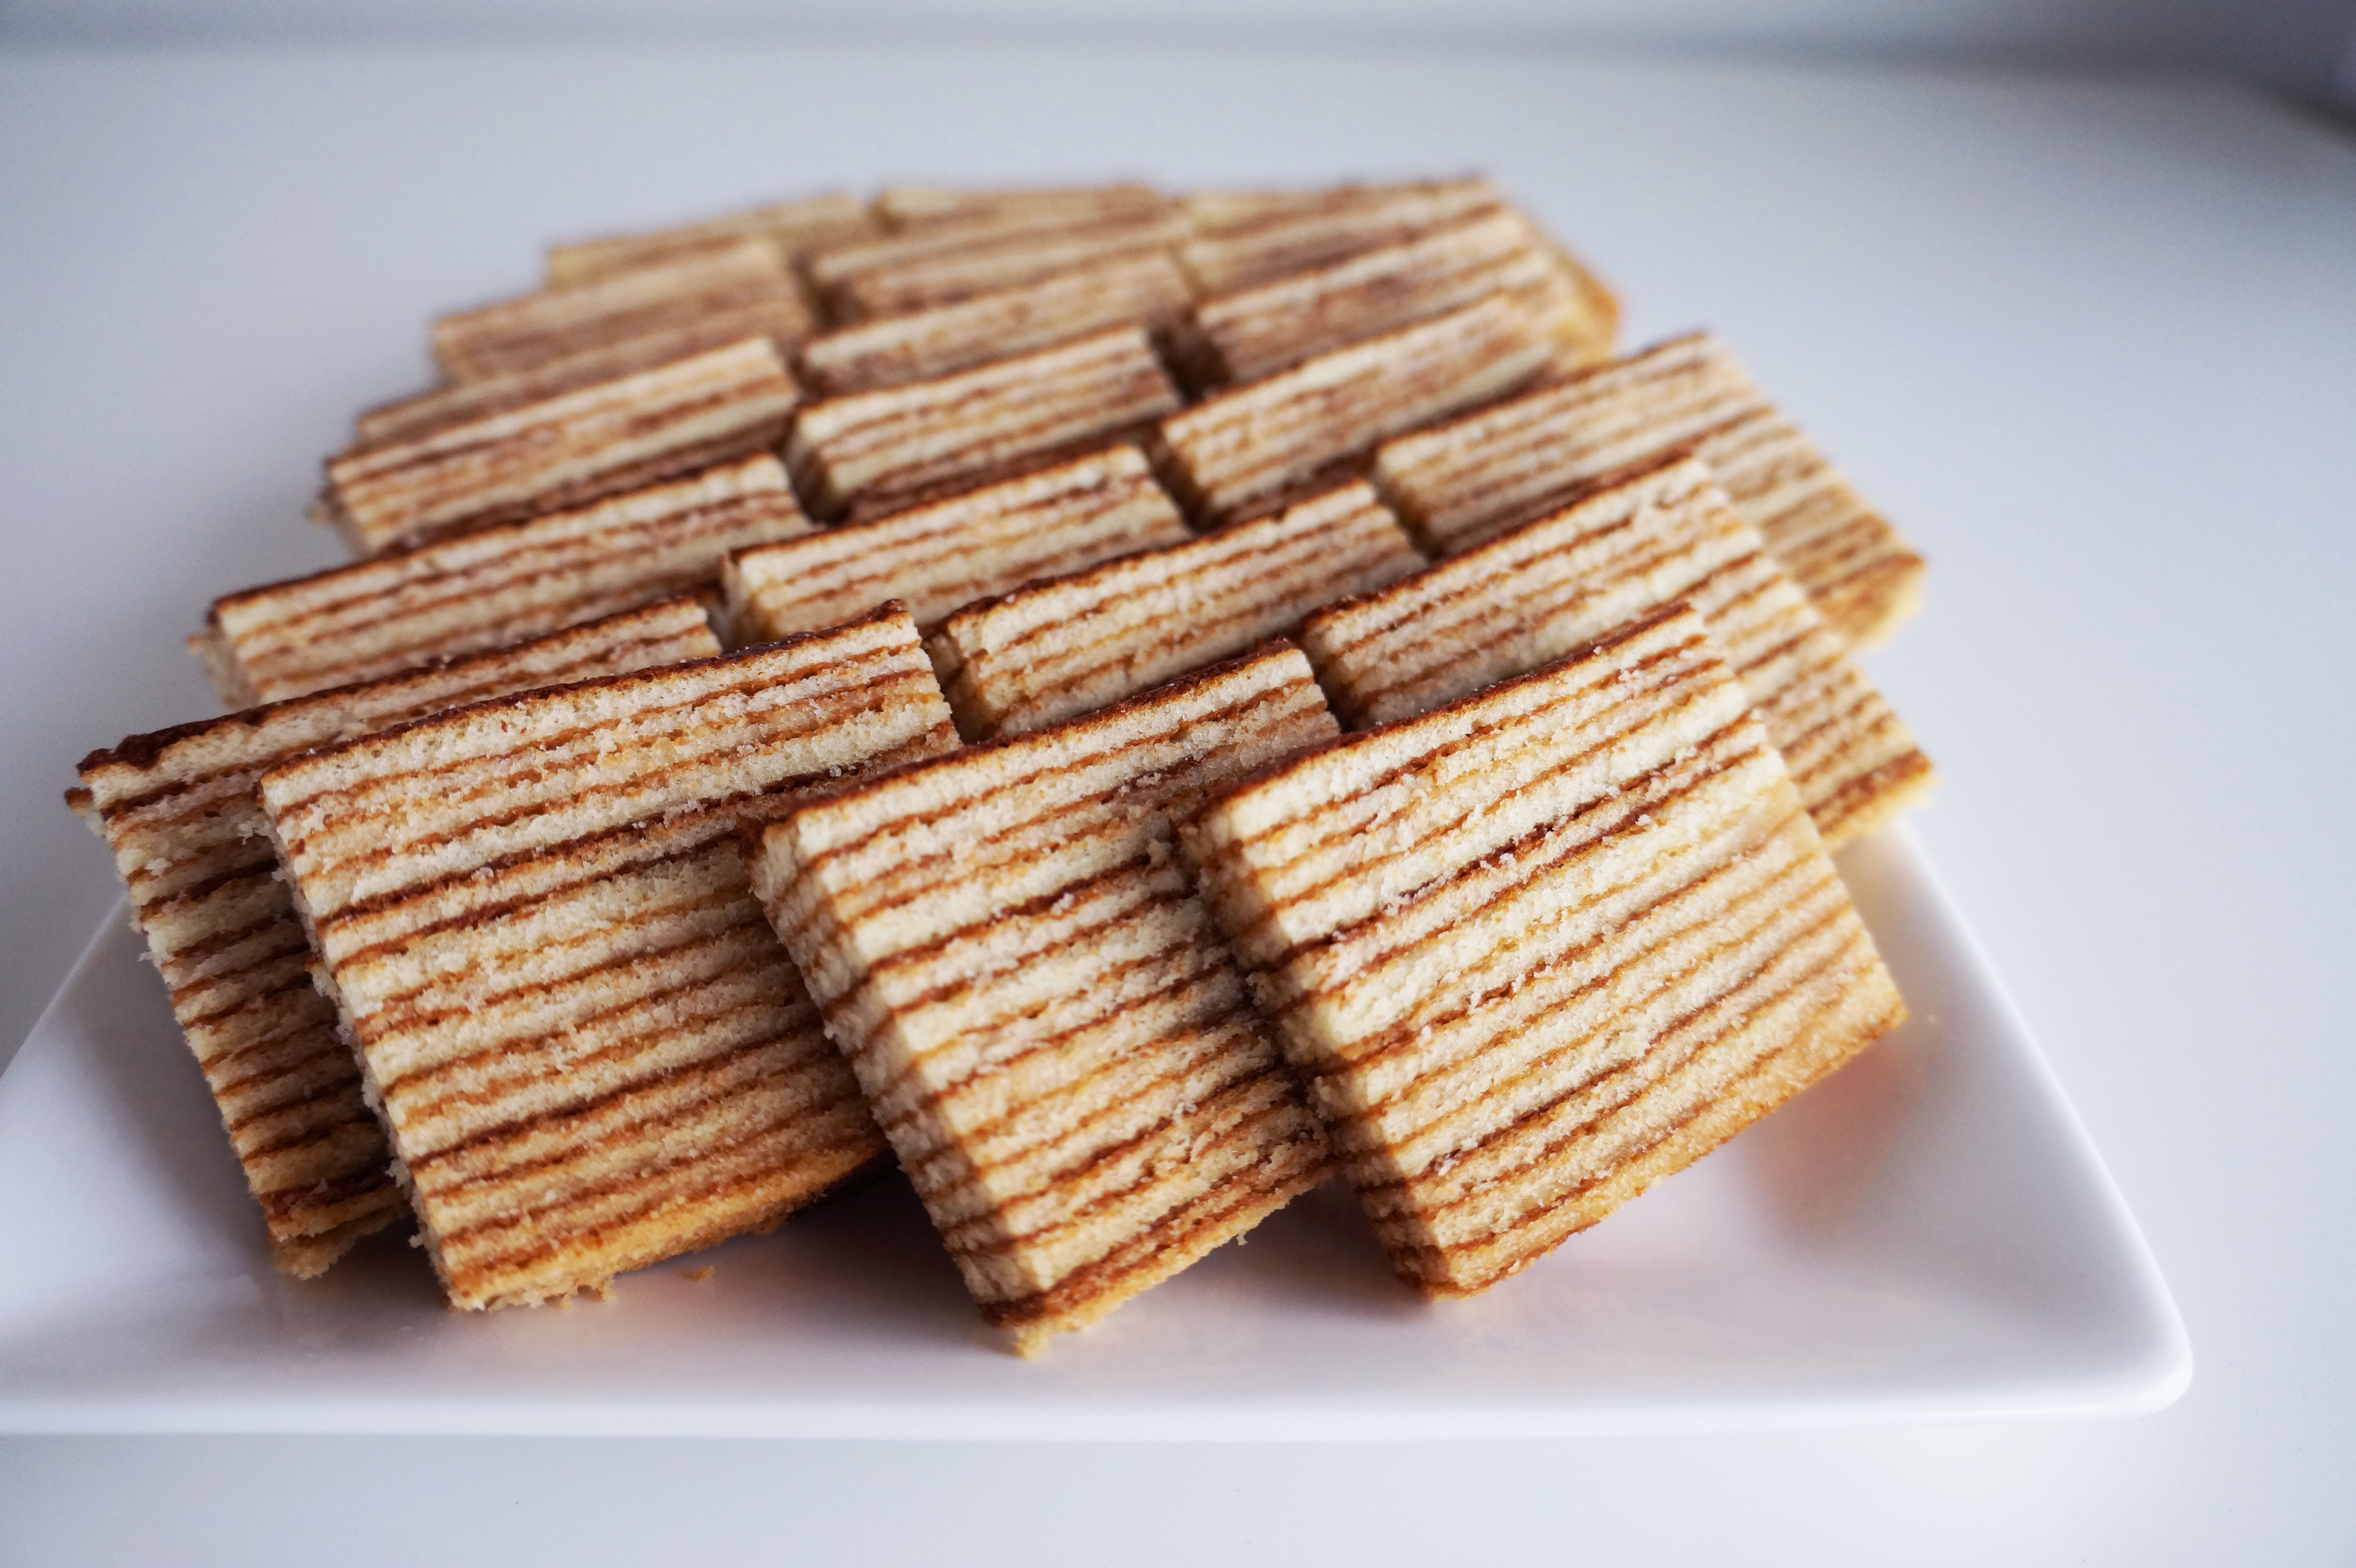 Picture of Kek Lapis (Indonesian Layer Cake)